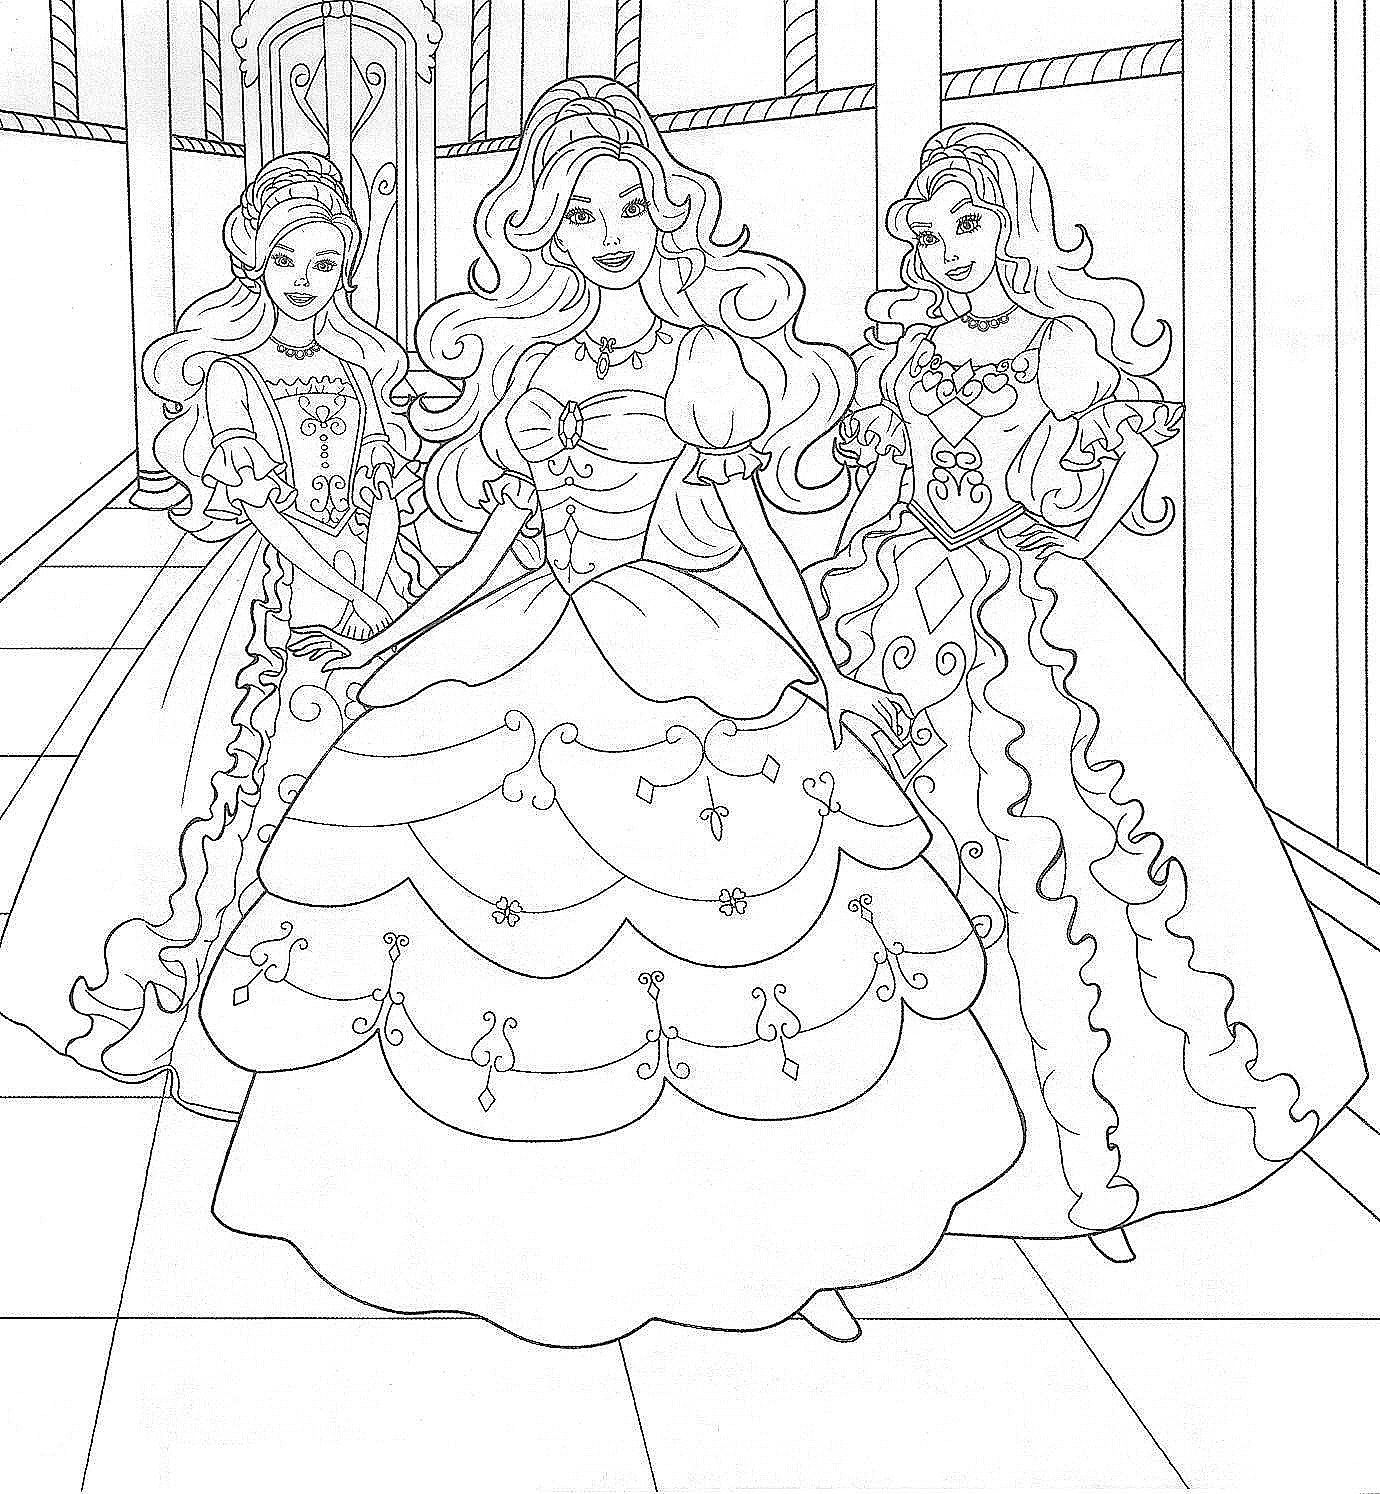 Coloring sheet barbie - Children Love To Portray Characters In Their Paintings Barbie Coloring Pages To Fill With Interesting